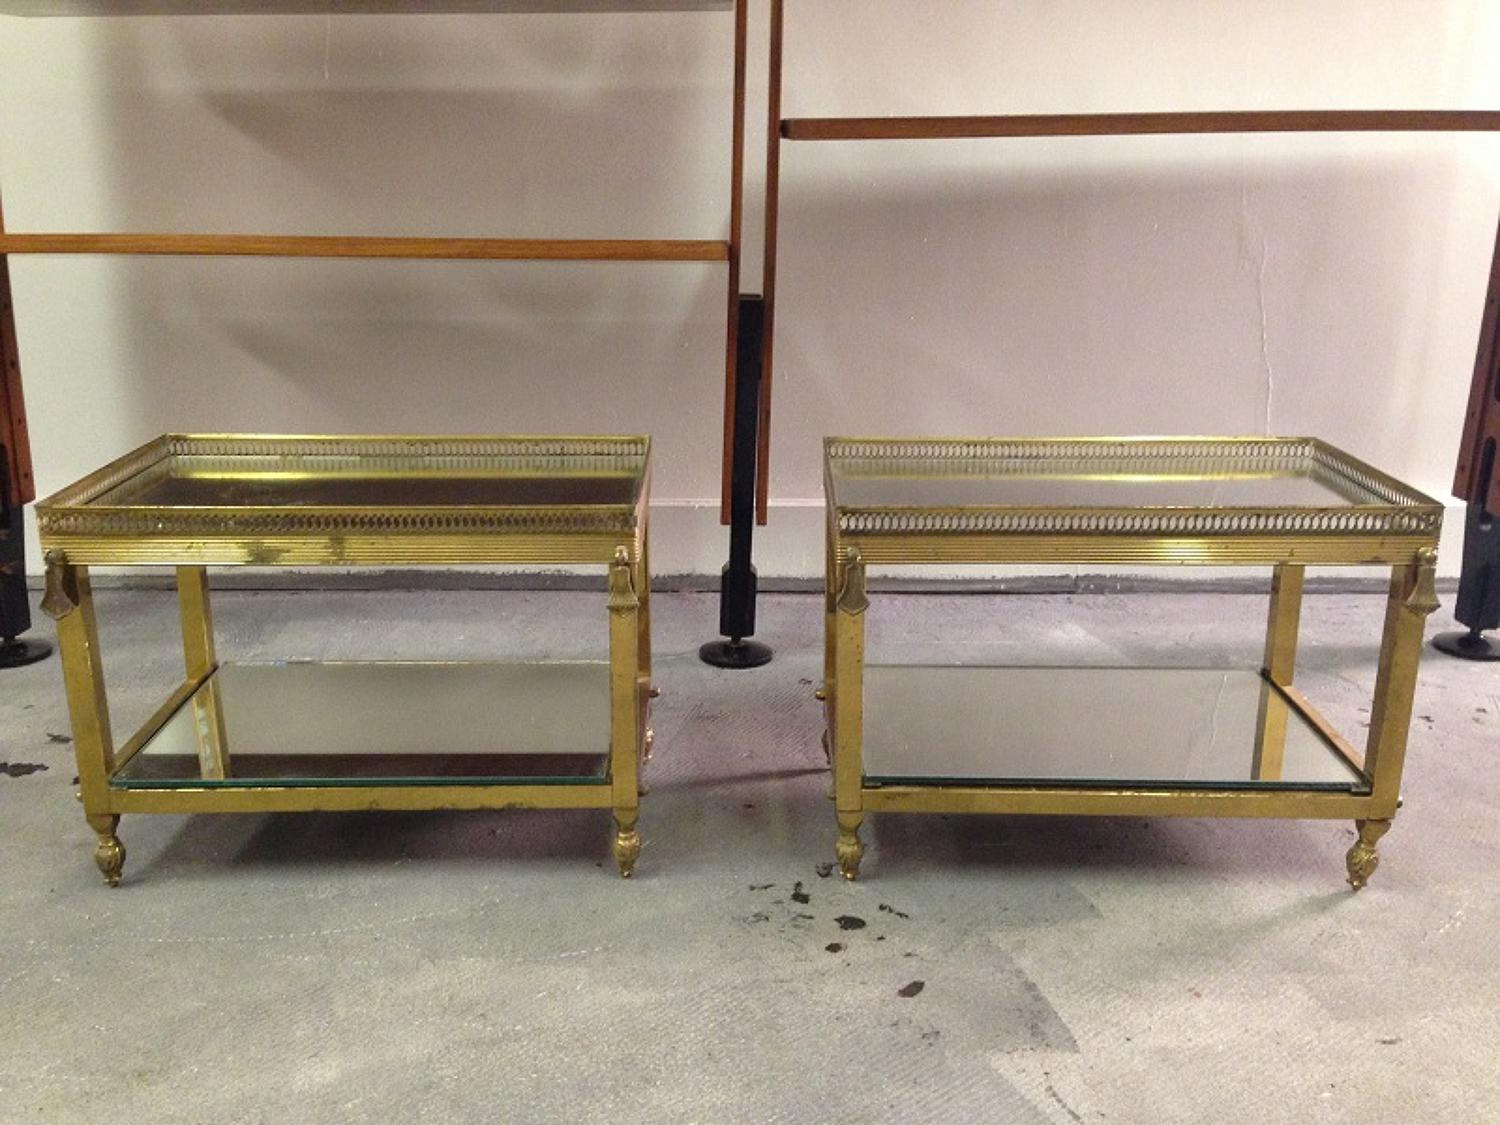 Brass and mirrored glass side tables